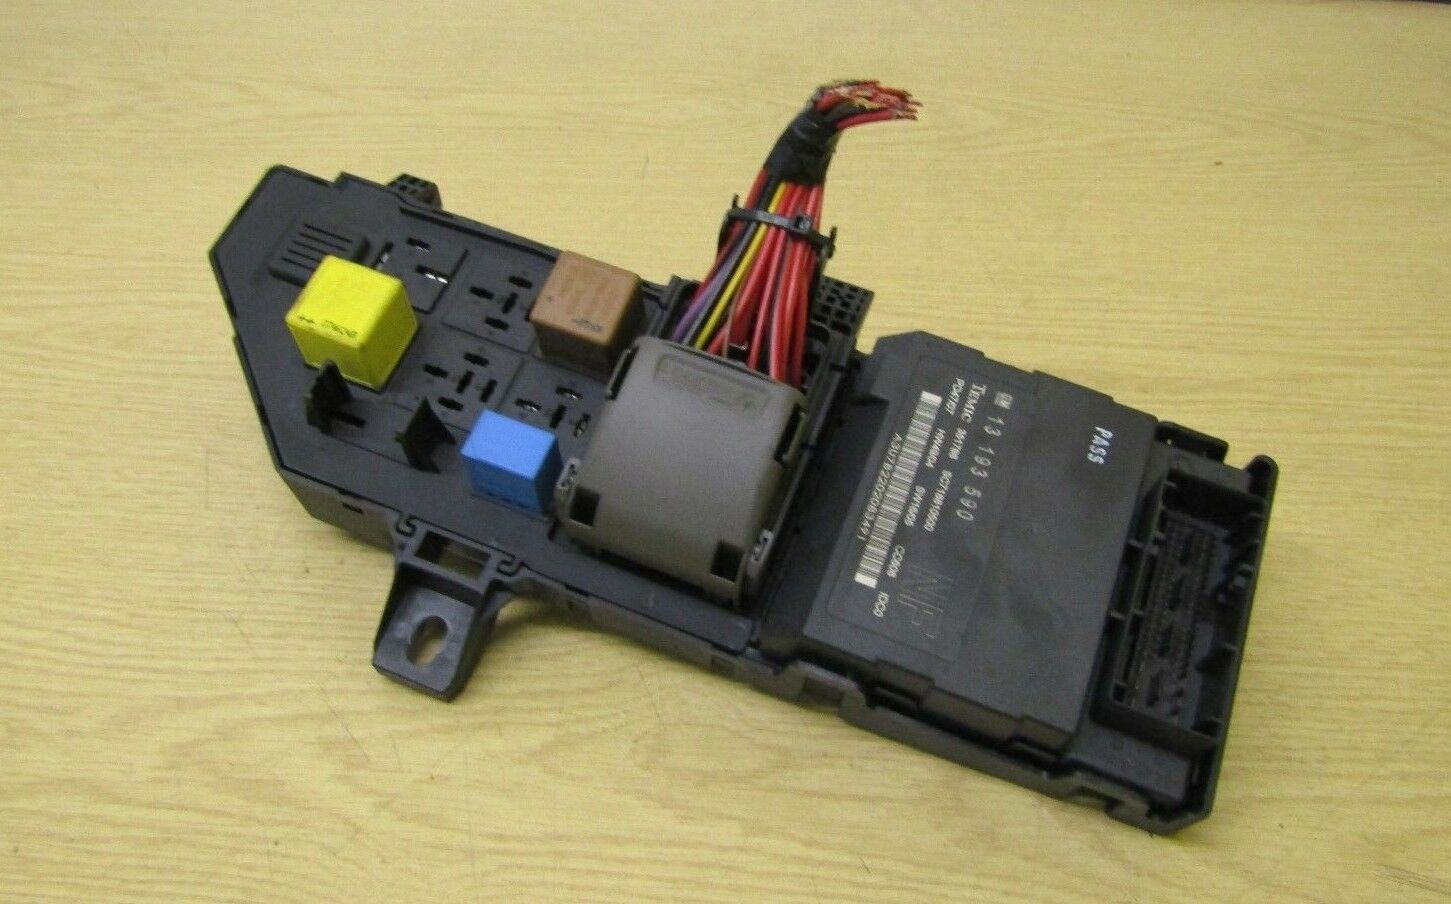 Vauxhall Vectra C Fuse Box & Body Control Unit Ecu 13223678 13193590  13193590 1 of 3Only 2 available ...